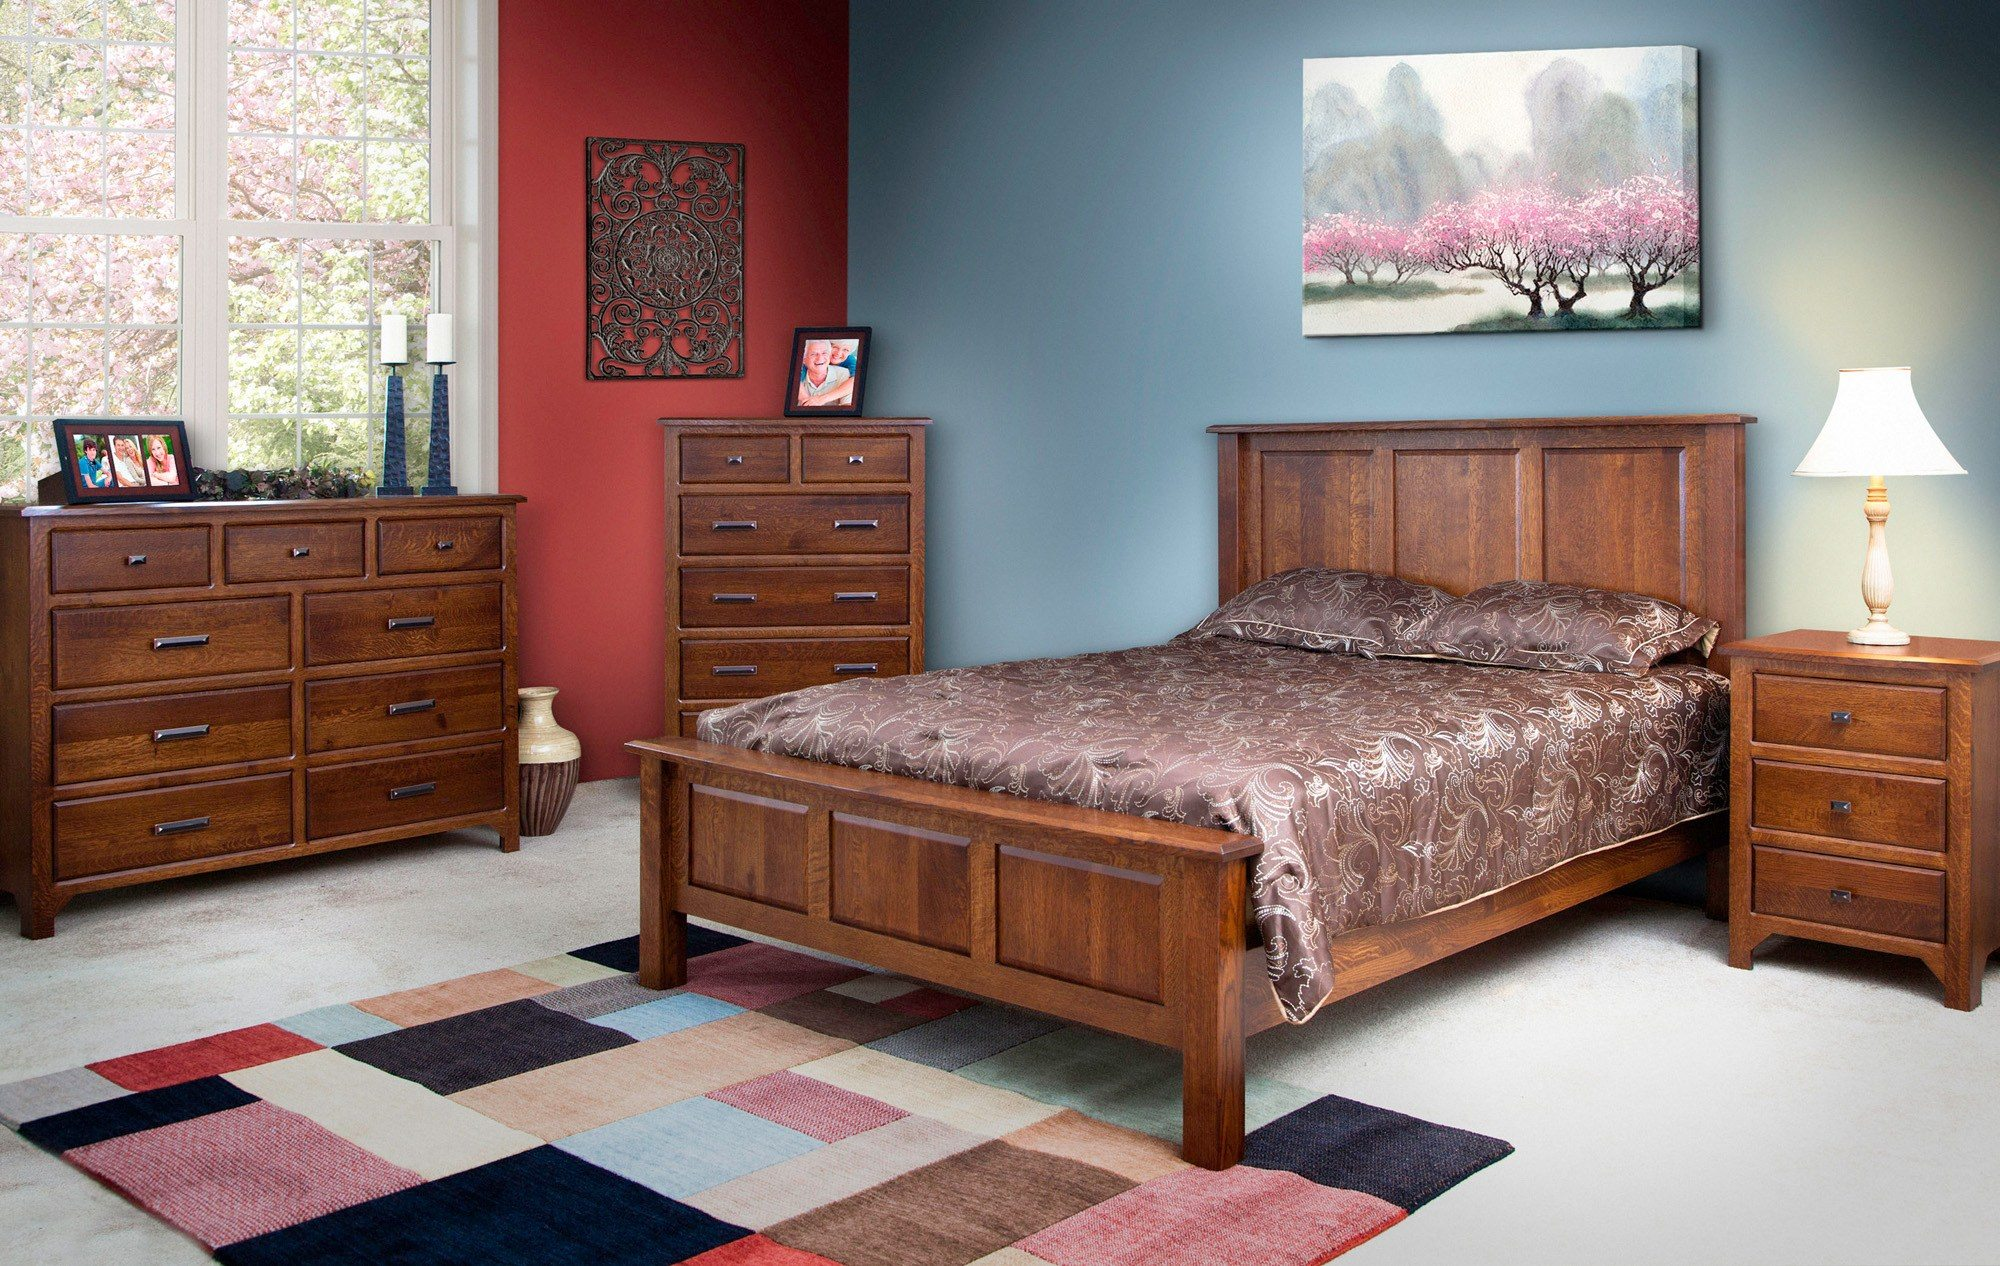 If You Are Looking For Bedroom Furniture We Re The Place To Get It Take A Look At What Amish Originals Has Offer With Wide Selection Of Homemade